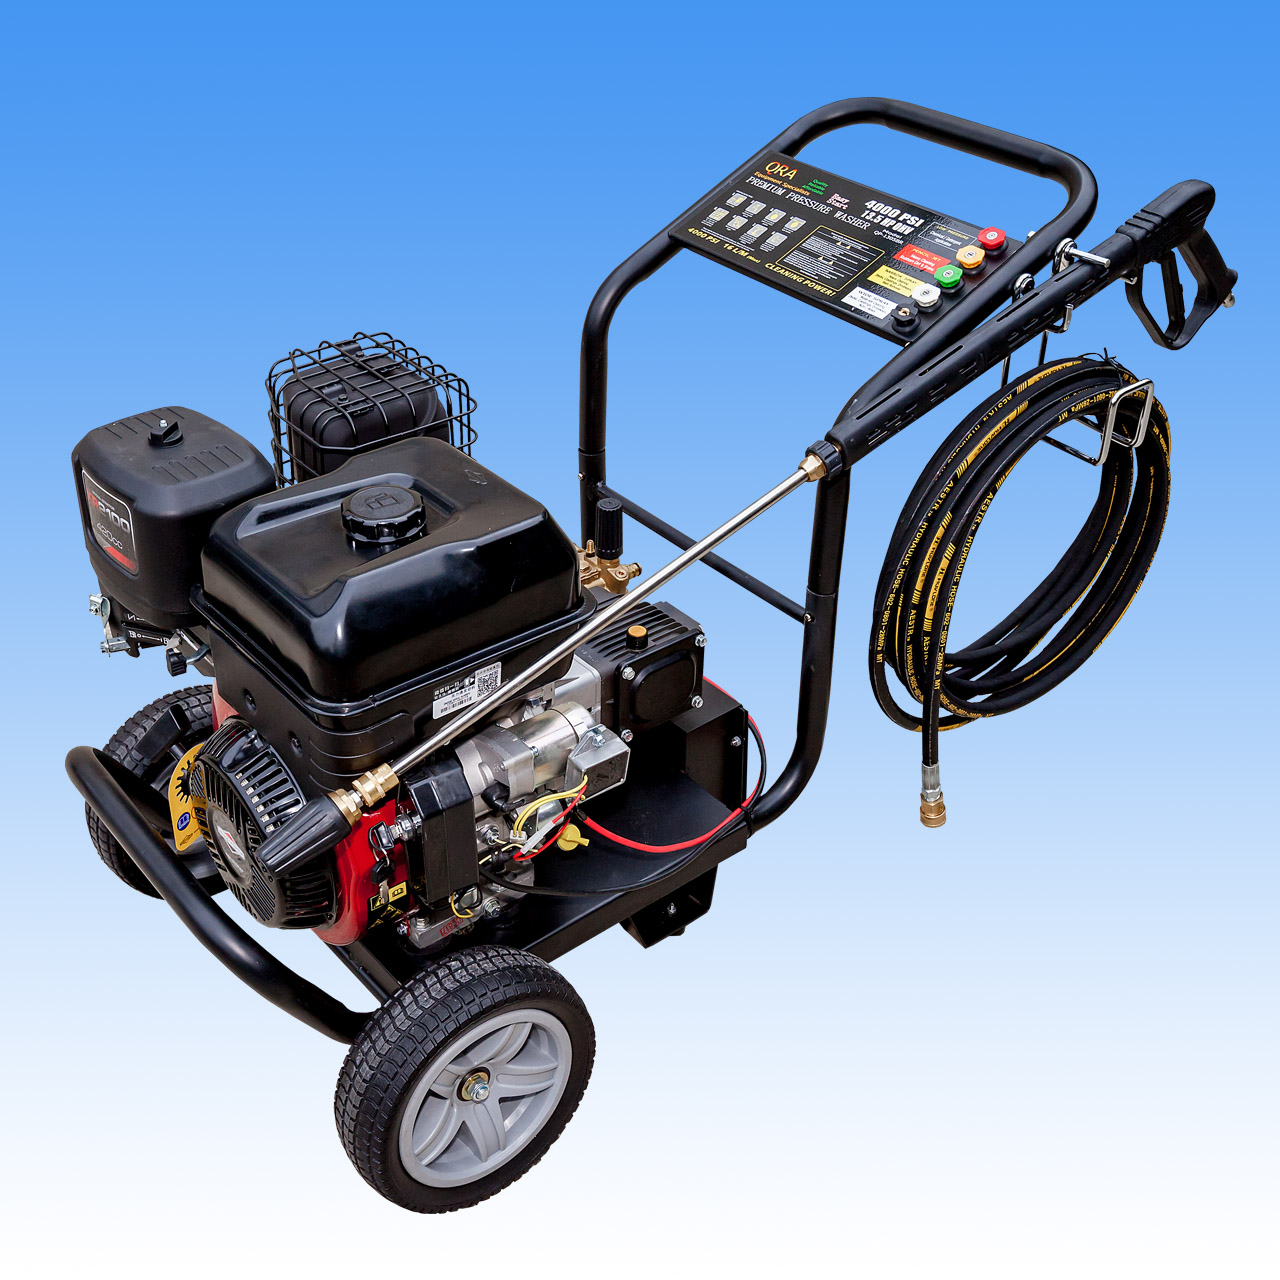 13.5hp Briggs & Stratton Engine with AR 4060psi Pump  QP1350 Electric Start   ** SPECIAL PRICE - LIMITED TIME ONLY **